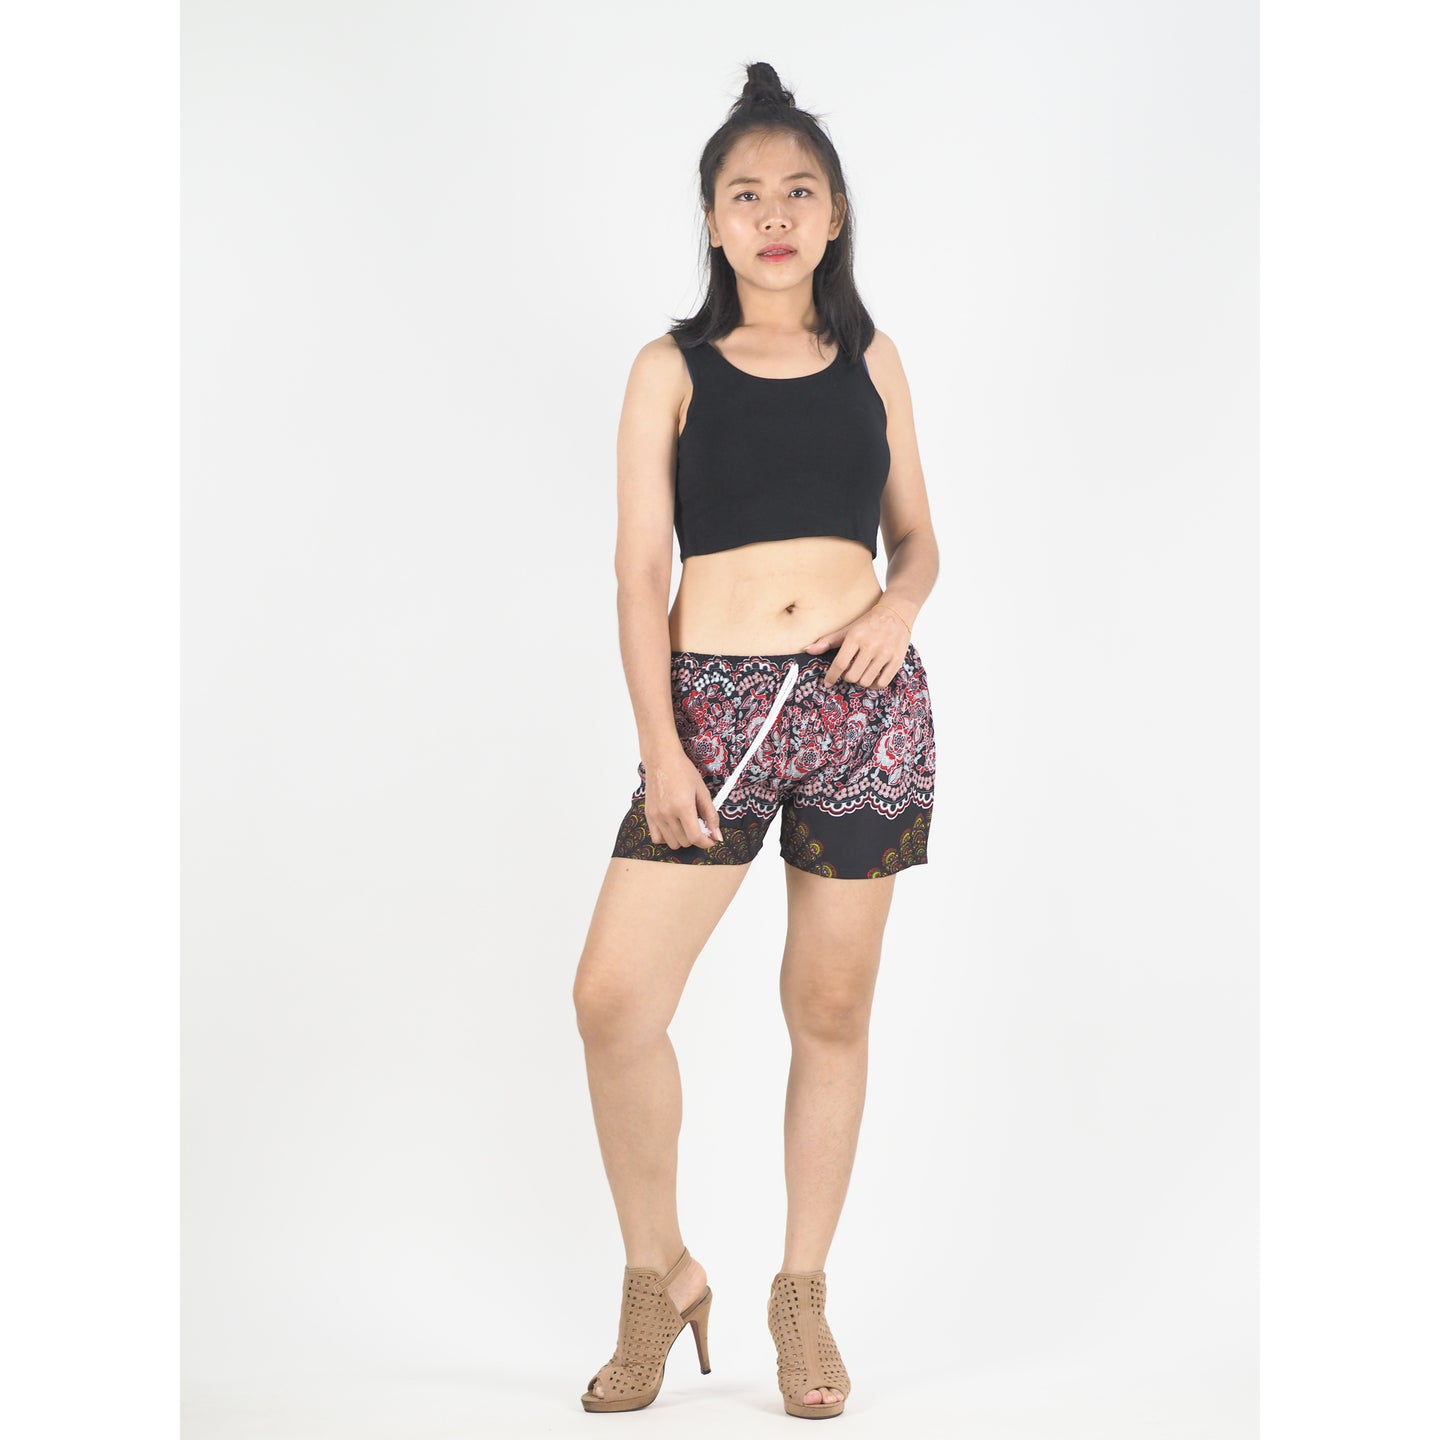 Sunflower Women's Shorts Drawstring Genie Pants in Black PP0142 020164 02